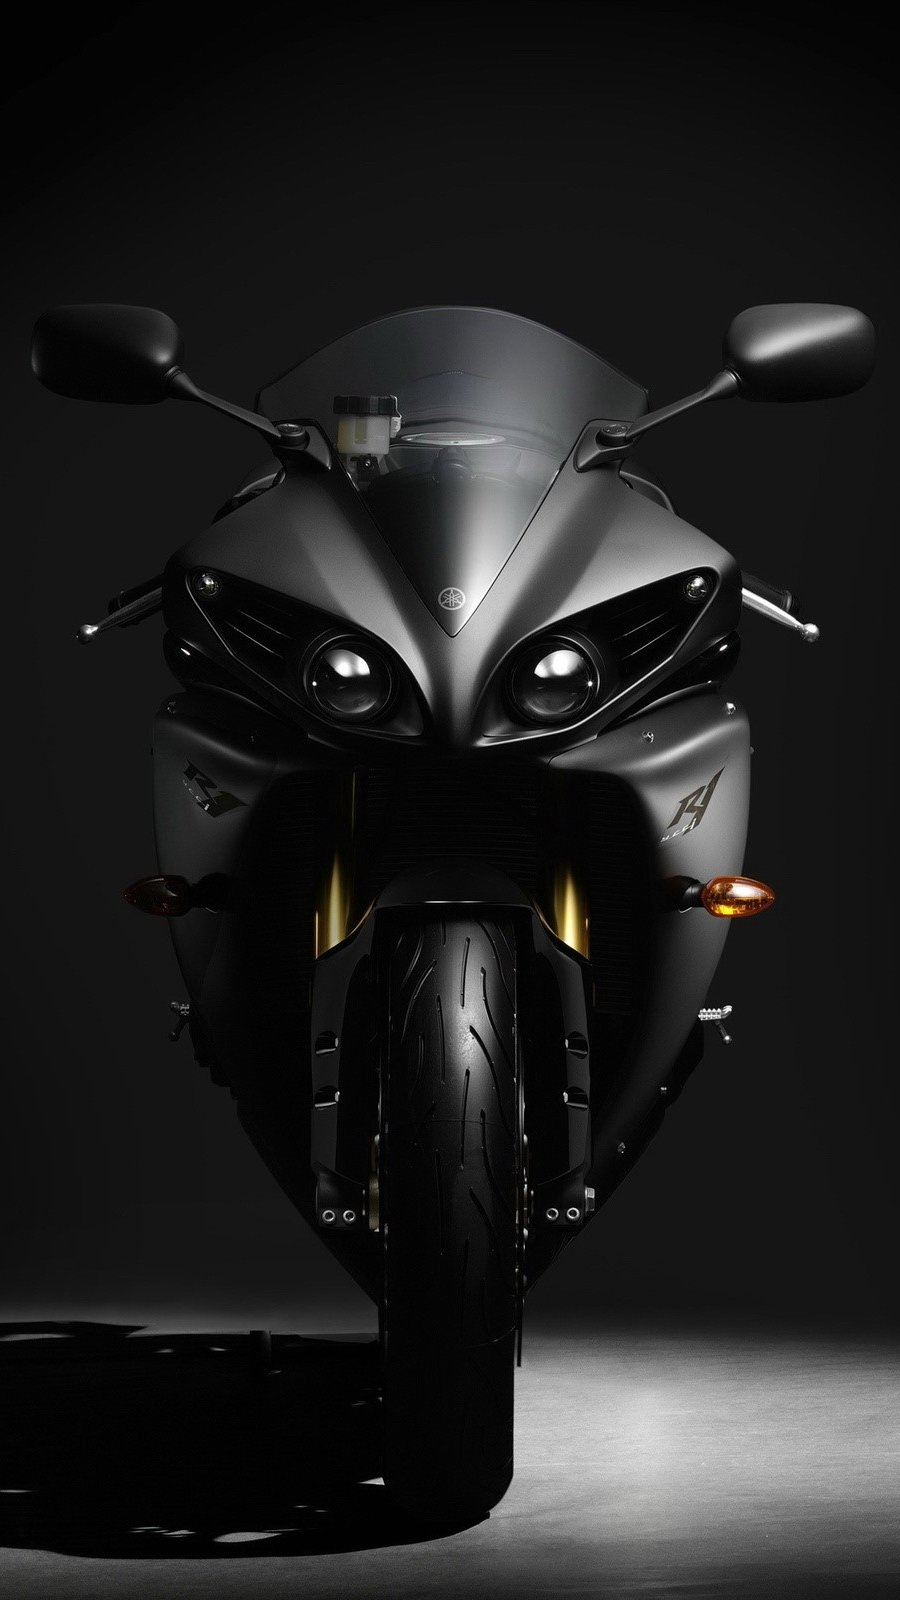 Wallpaper Yamaha YZF R1 Vertical